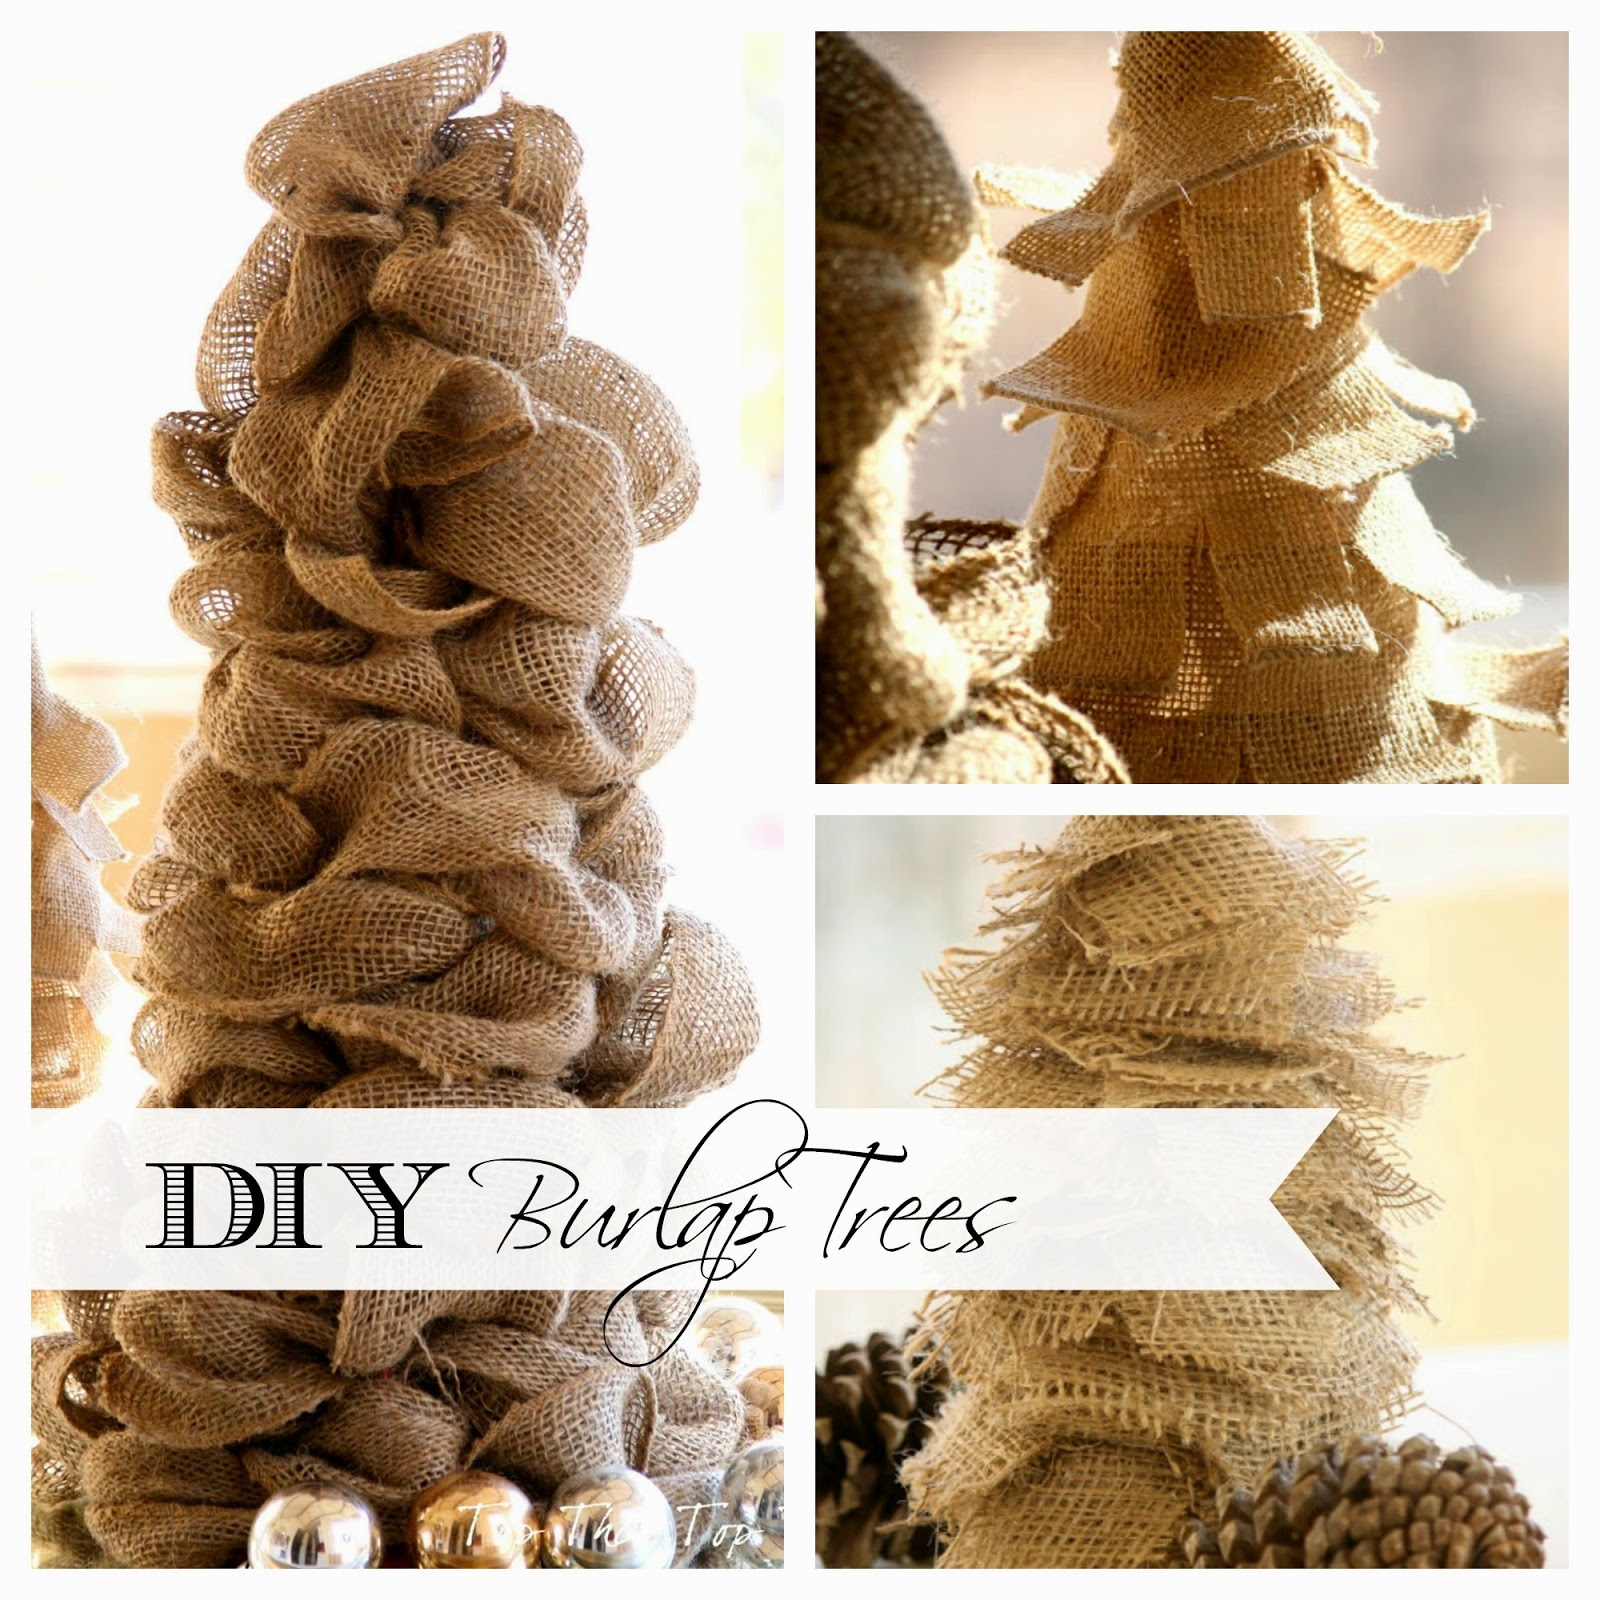 3 easy diy burlap trees that anyone can make duke manor farm for What can i make with burlap